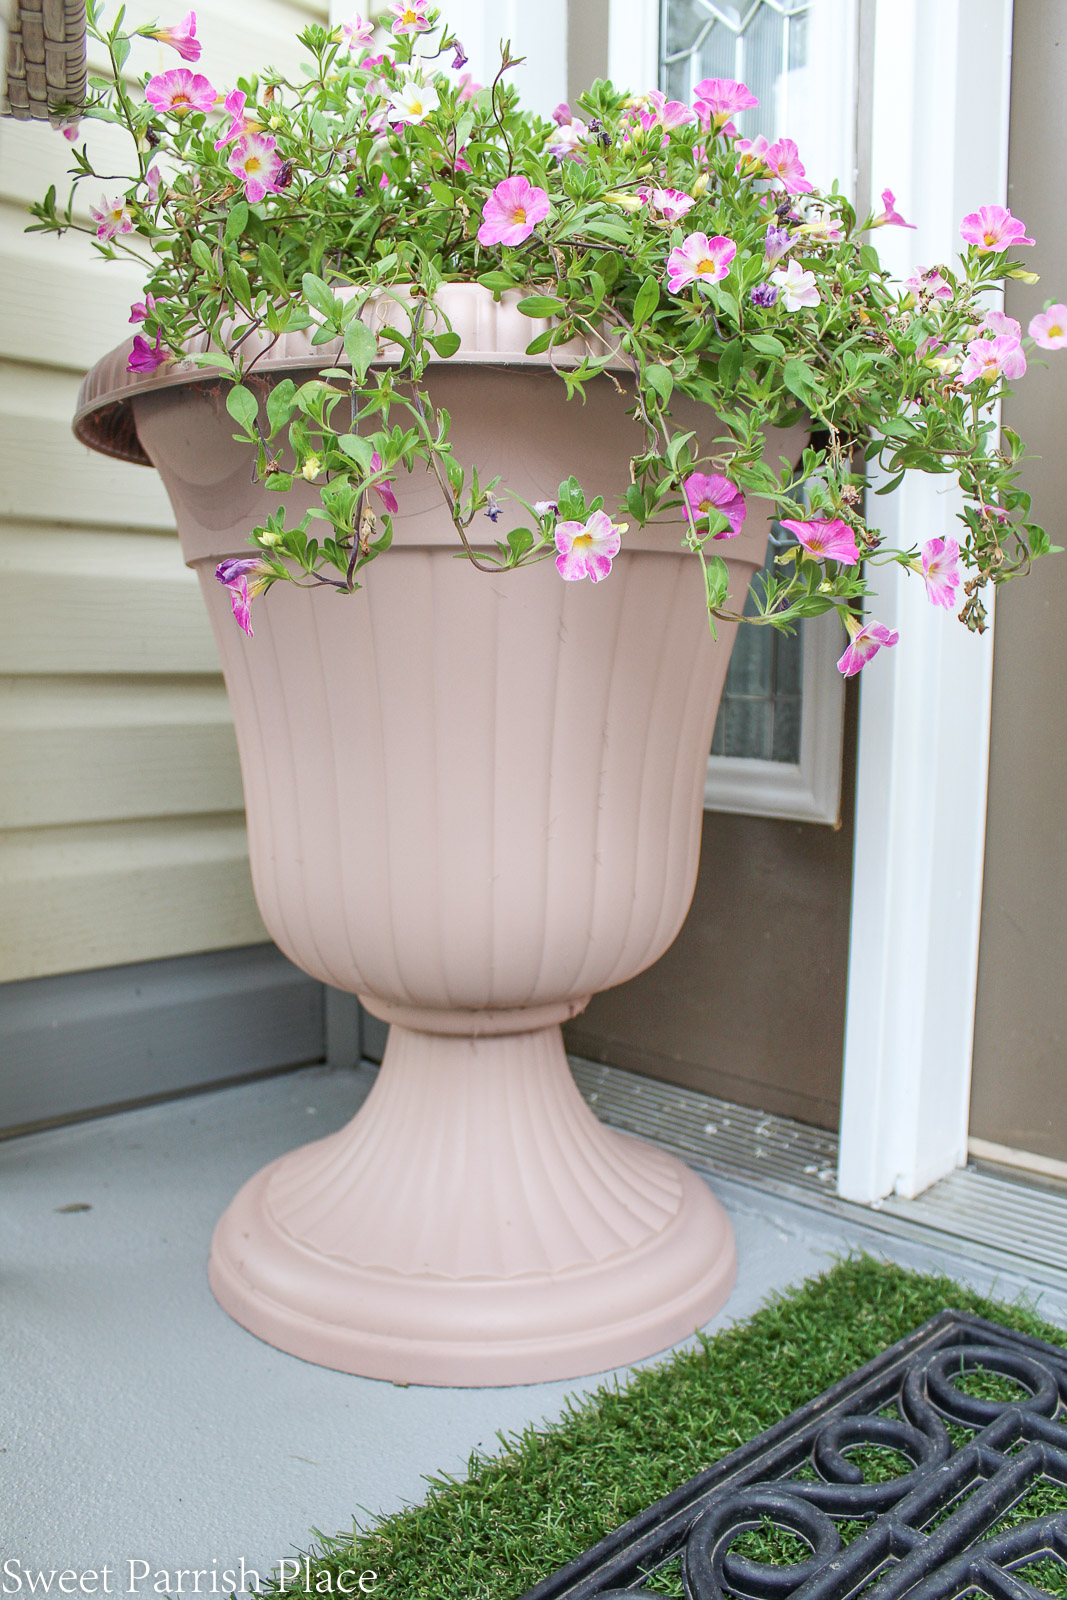 wild rose painted urns with pink flowers